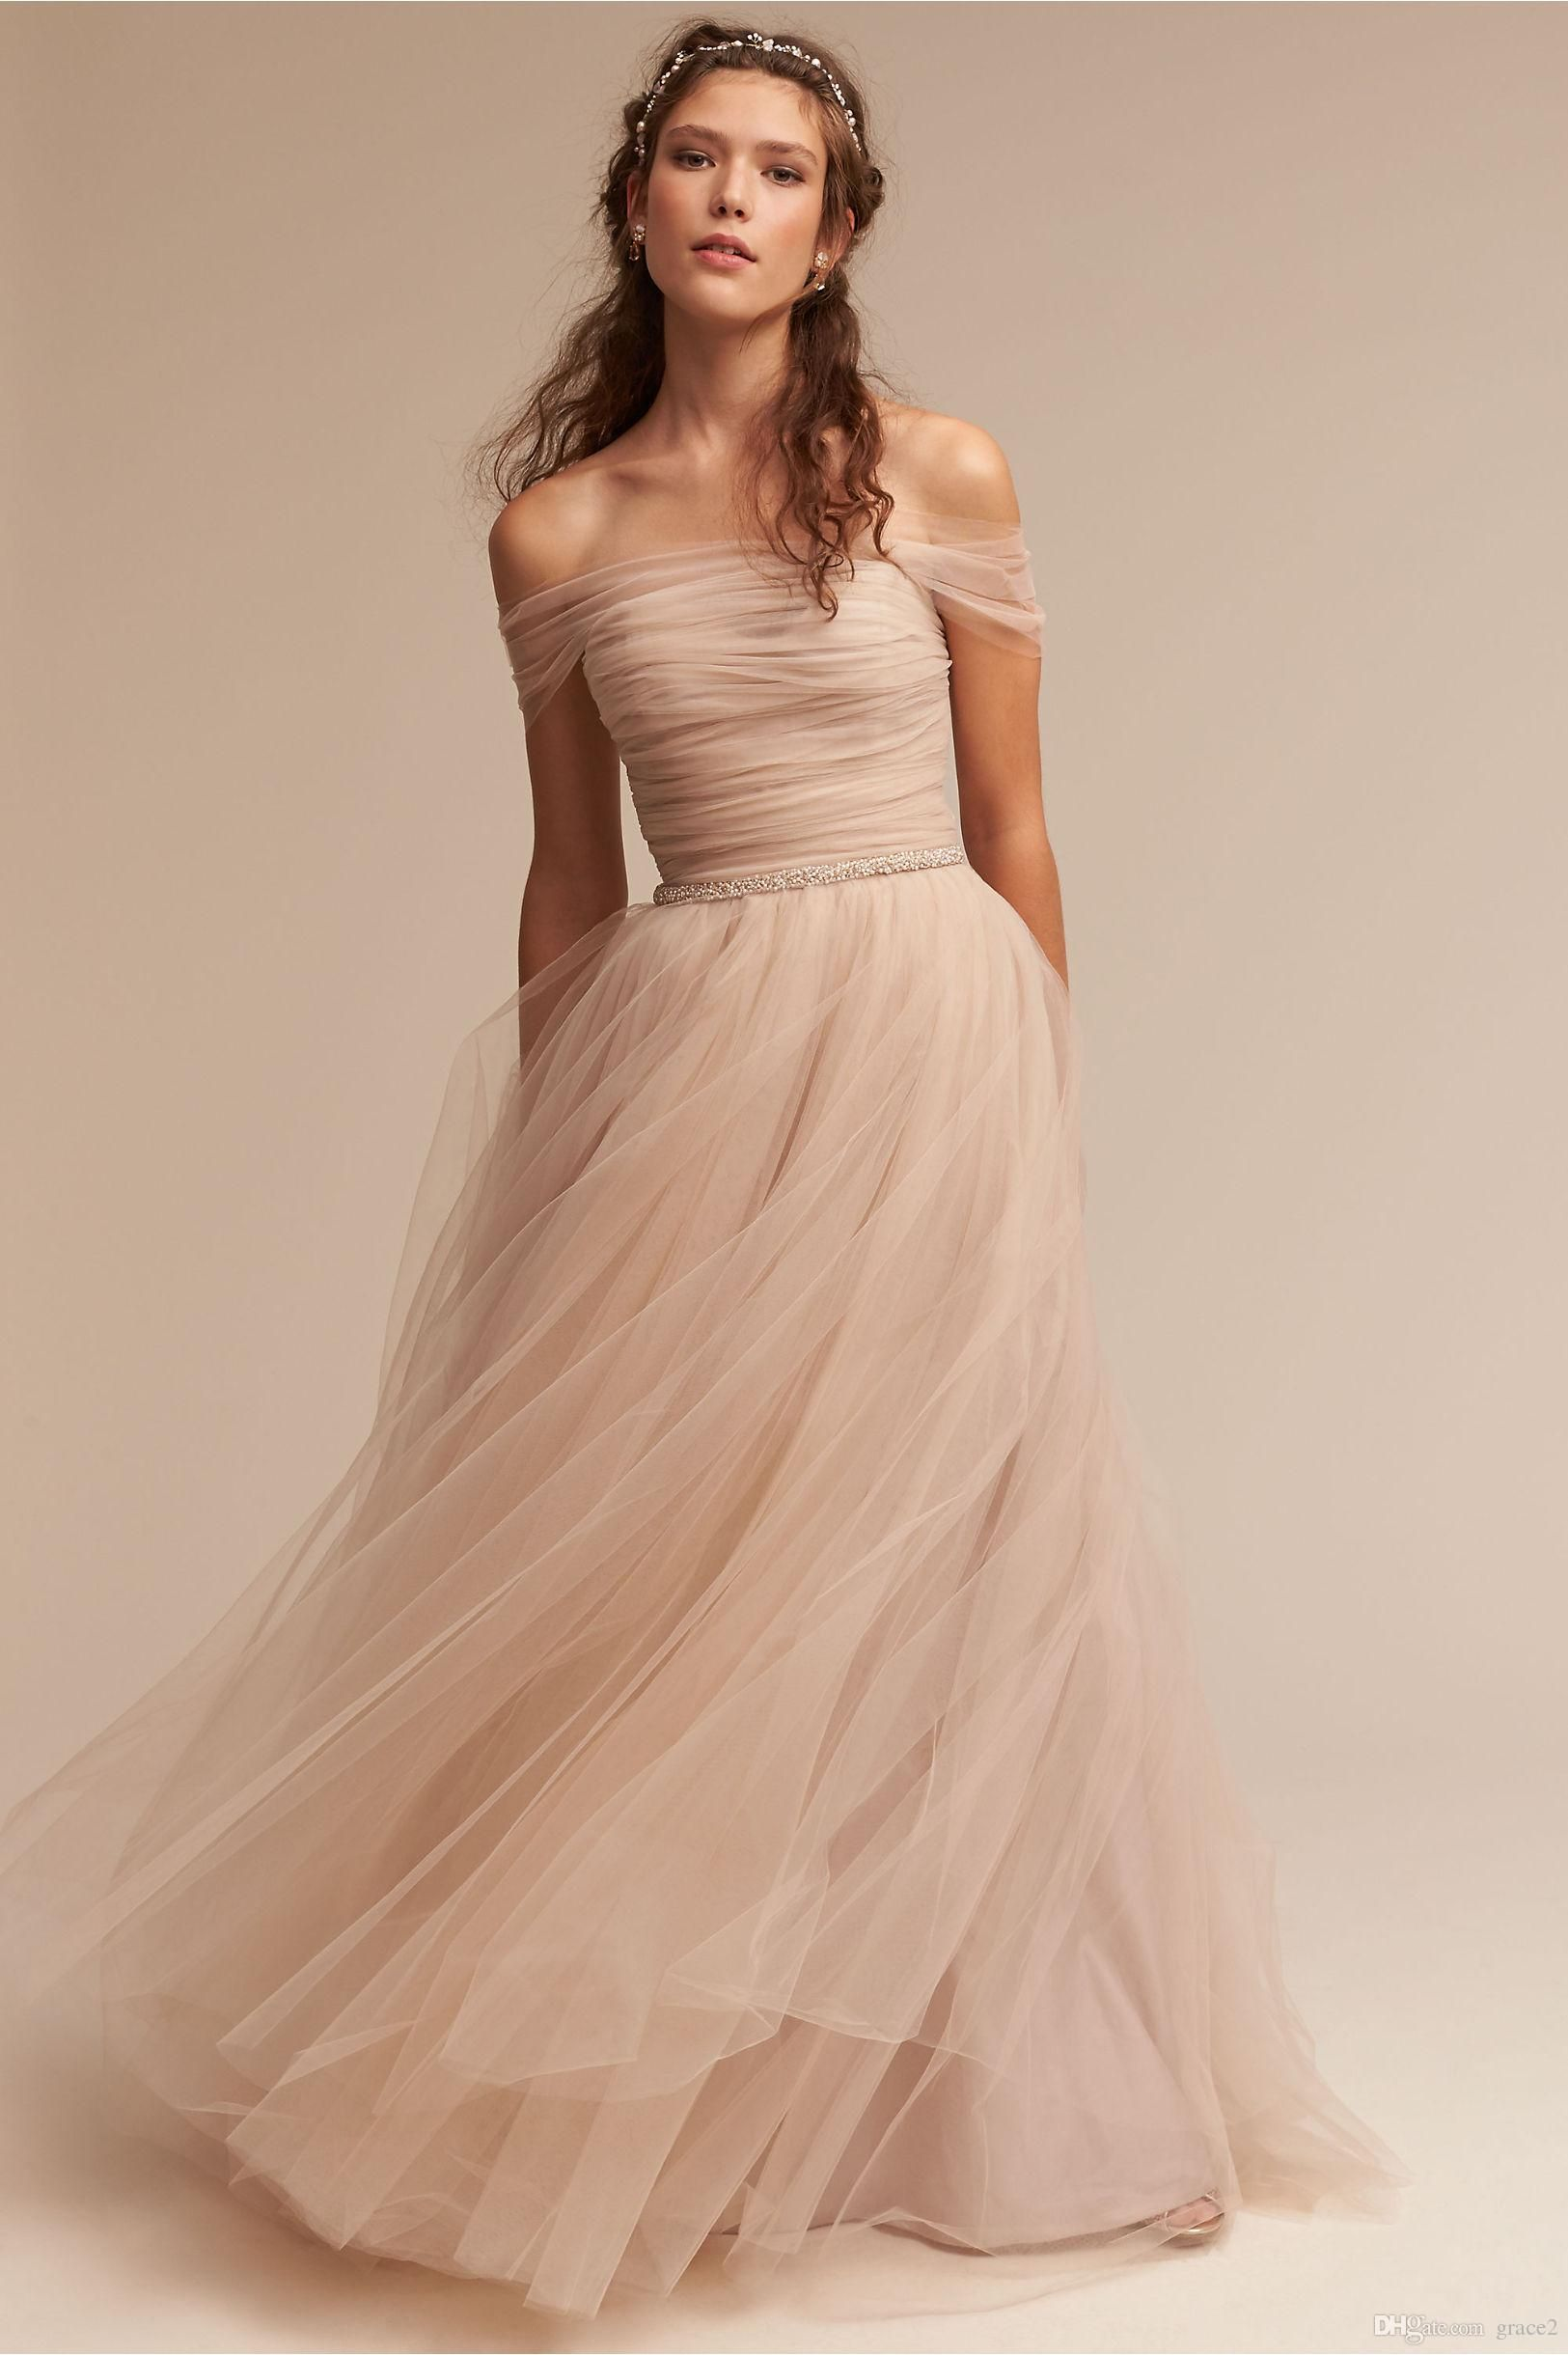 3deac409e69c Modern Blush Wedding Dresses 2017 Bhldn Vestido De Noiva with Illusion Off  Shoulder And Beaded Sash Pleated Tulle Romantic Bridal Gowns Blush Wedding  ...